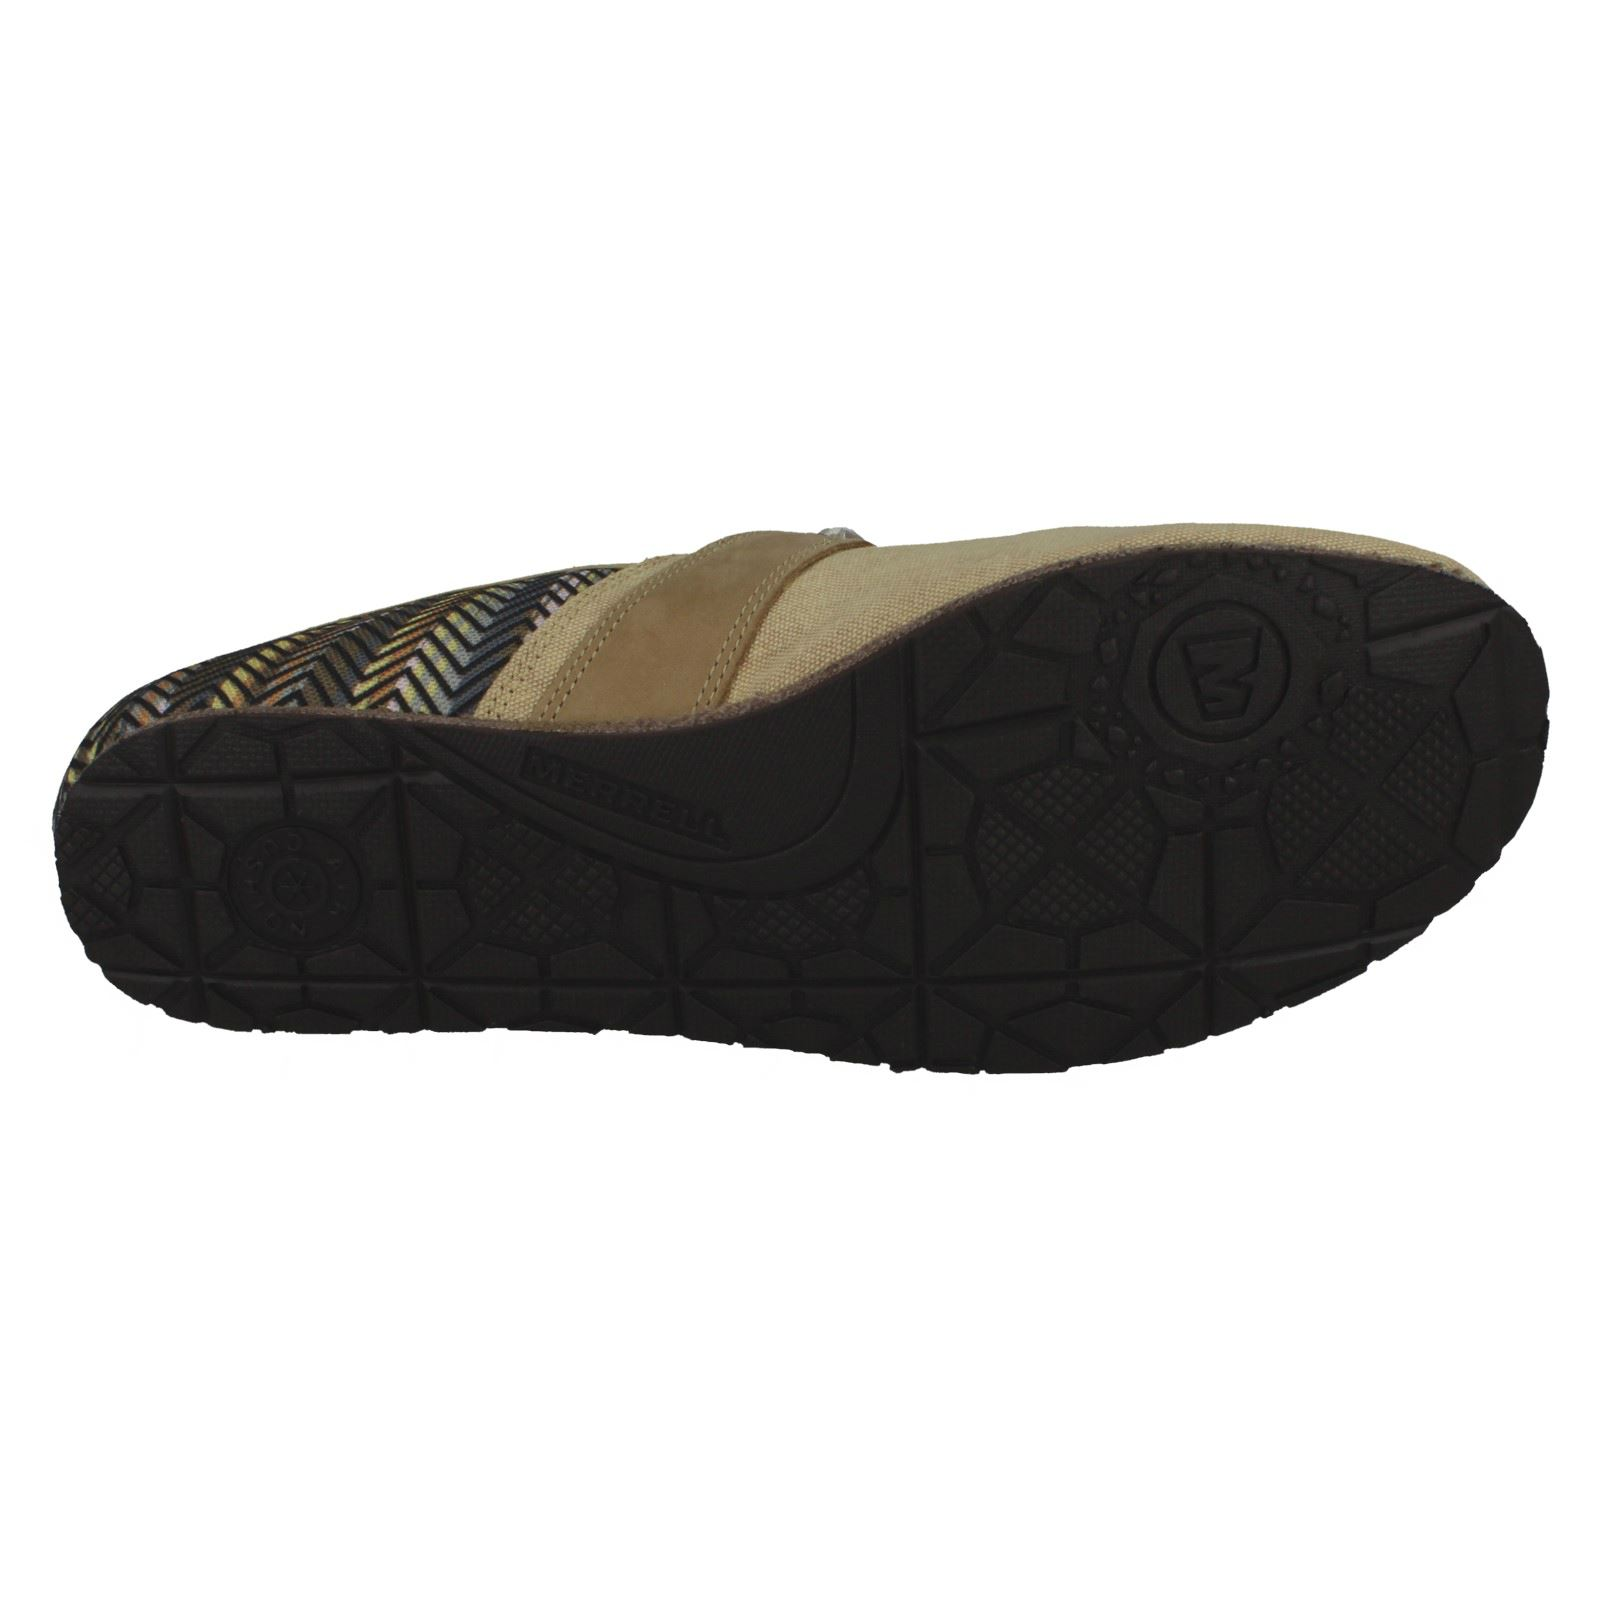 Ladies-Merrell-Casual-Flat-Shoes-039-Artemisia-039 thumbnail 3